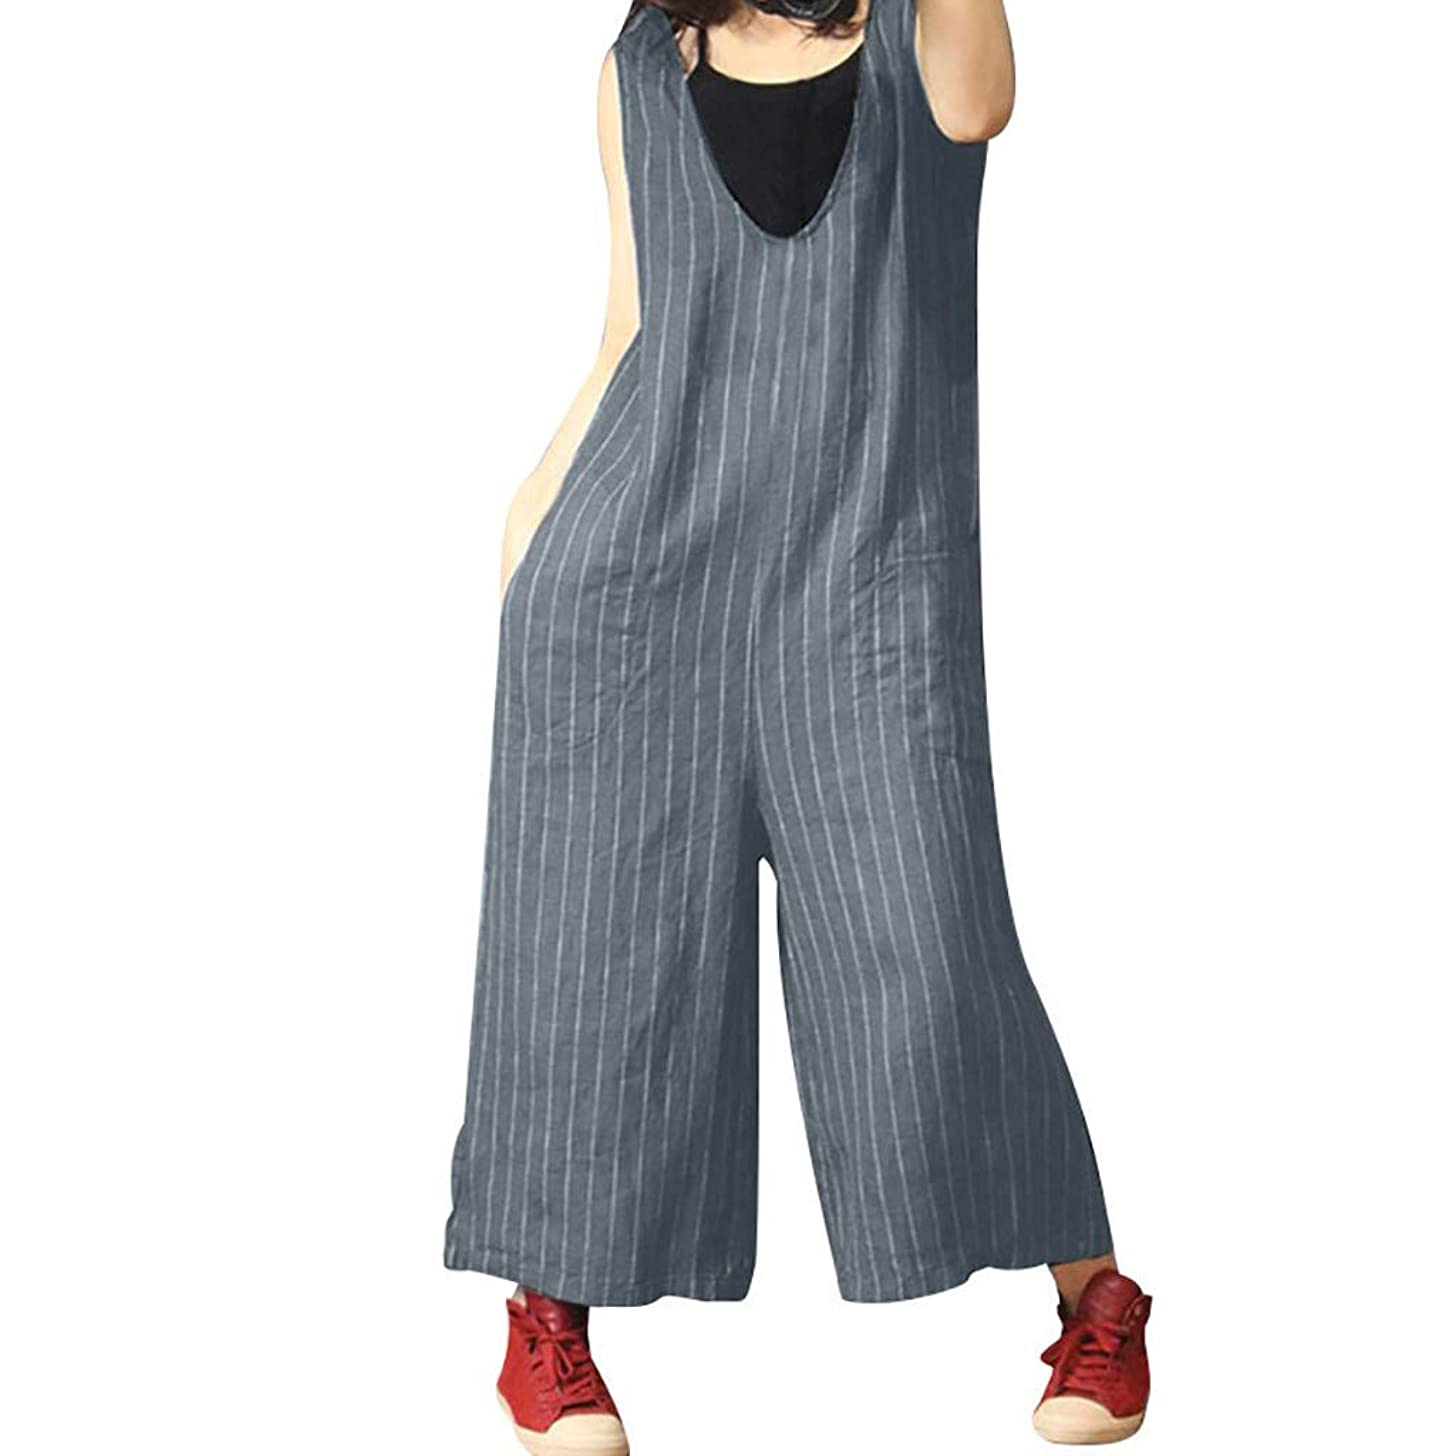 ZQISHMAO Women Linen Bib Pants Wide Leg Jumpsuits Girl Rompers Overalls with Pockets